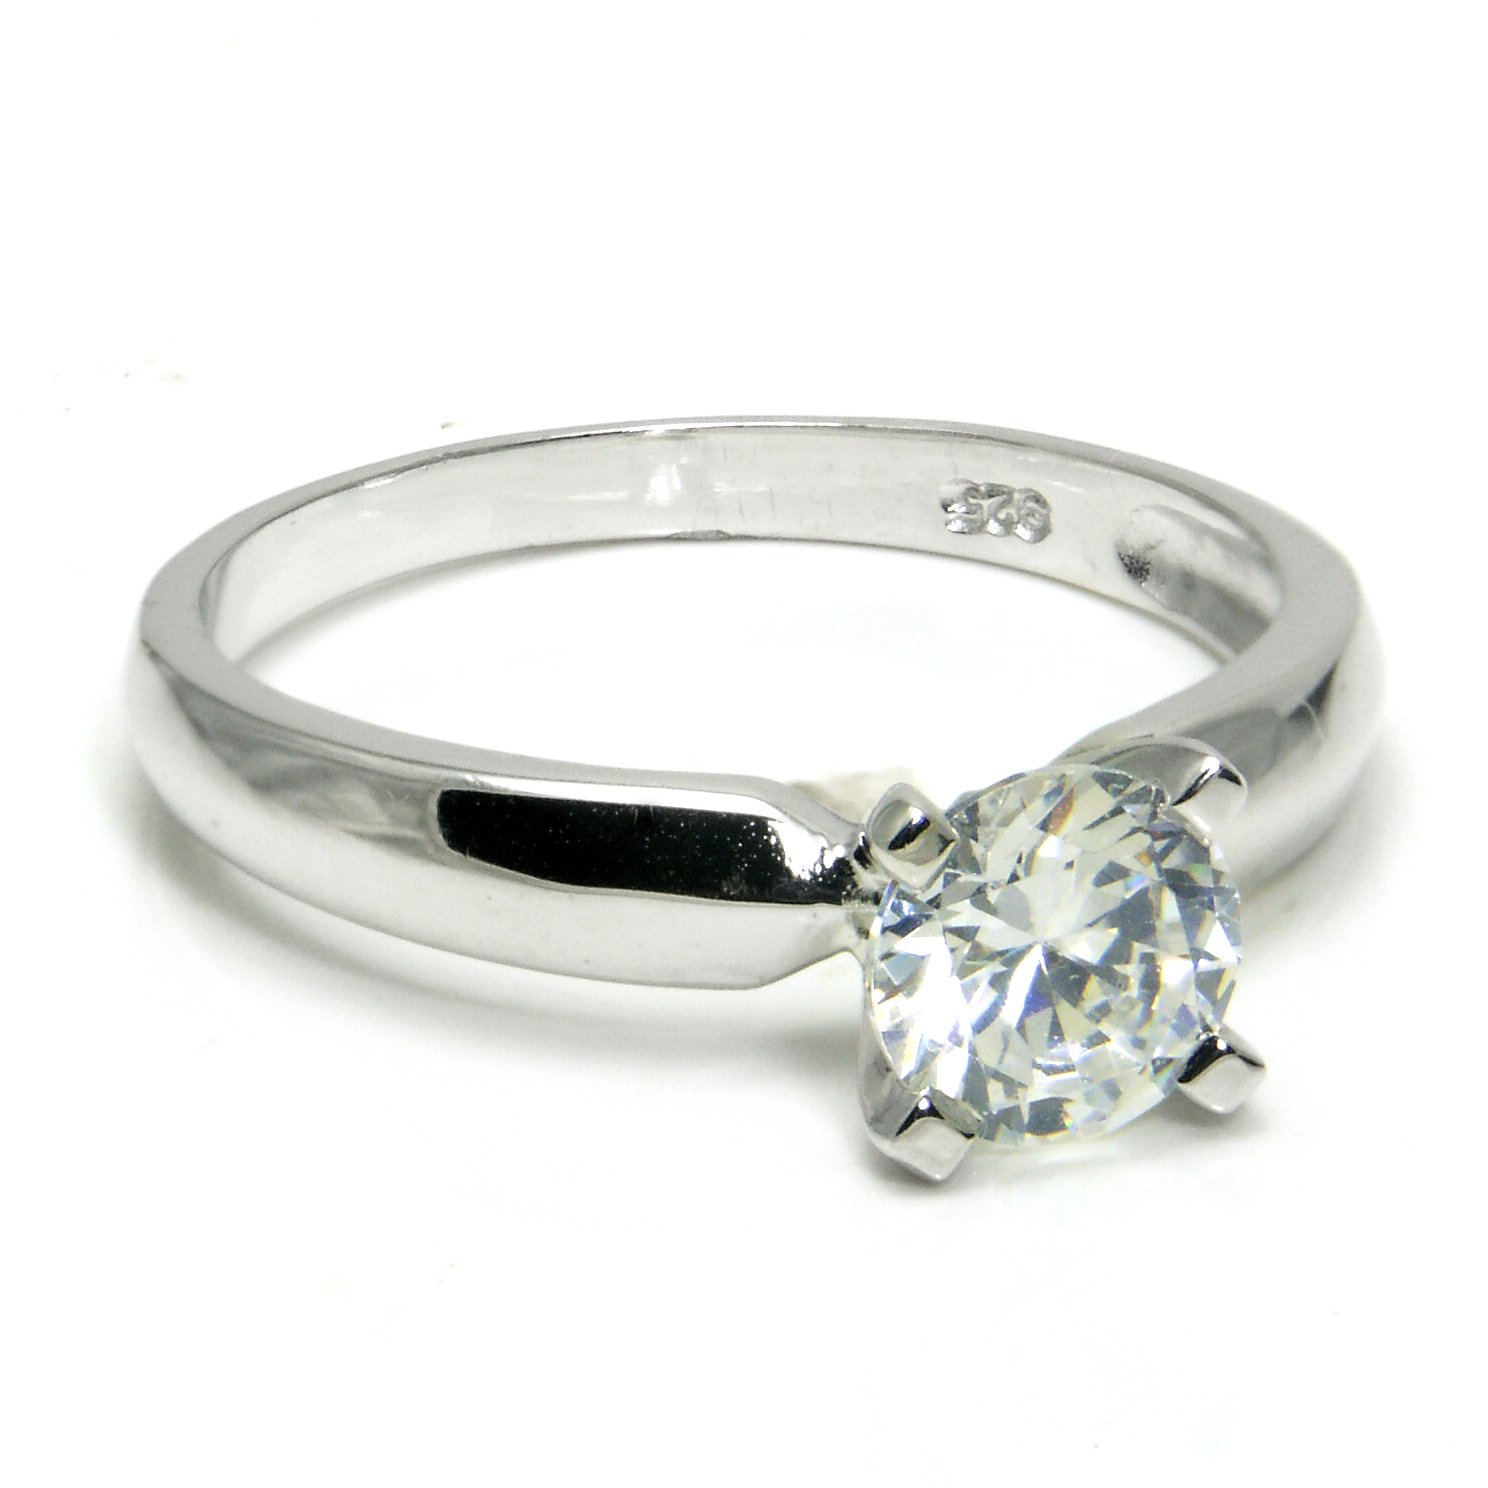 Metal Factory Sz 4 Sterling Silver Cubic Zirconia Solitaire 1.25 Carat tw Round Cut 4-Prong Set CZ Engagement Ring